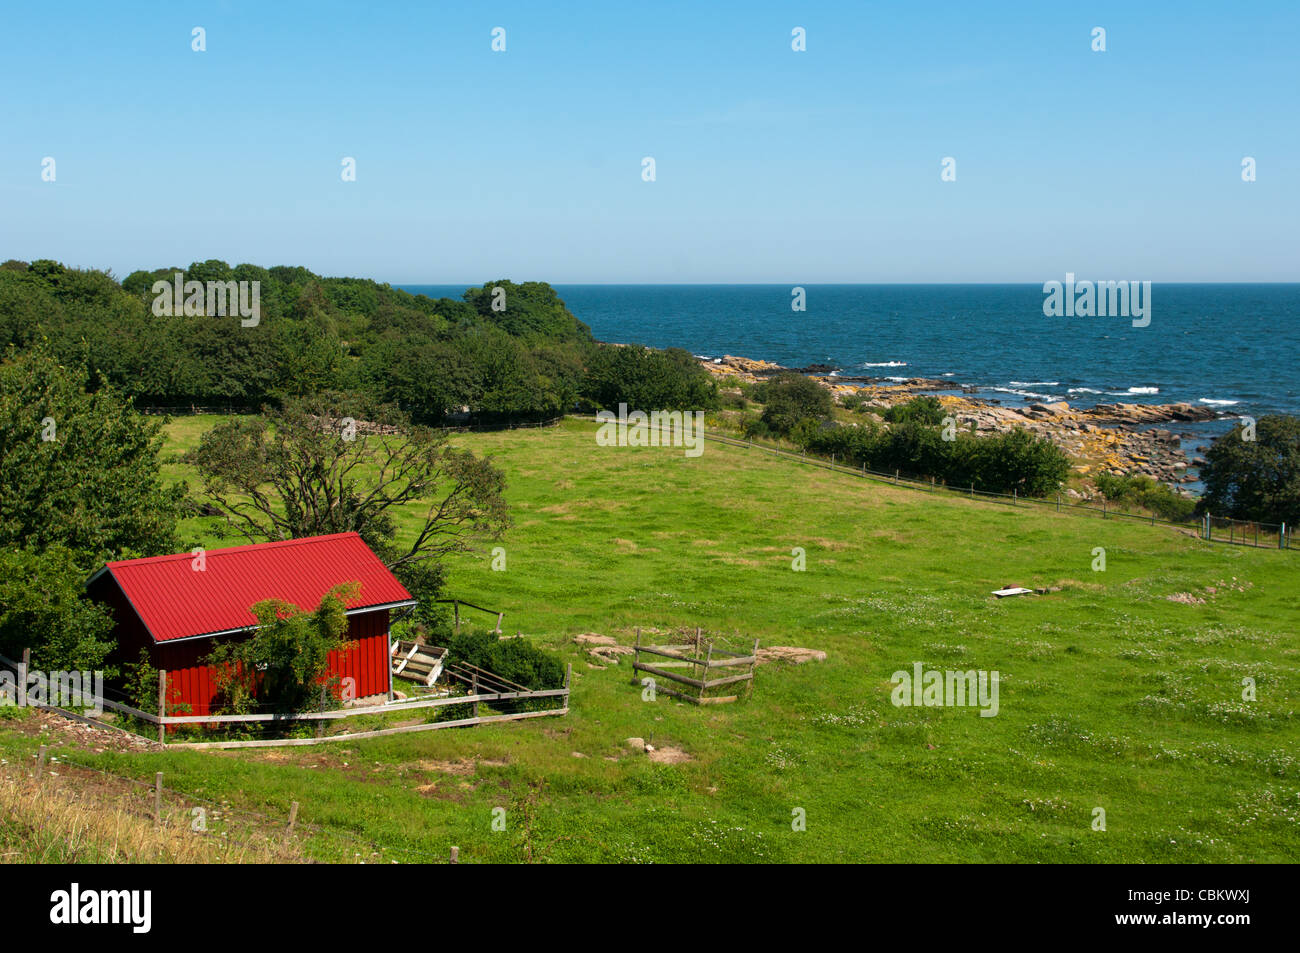 House of descent to the sea. Bornholm in Denmark. Stock Photo